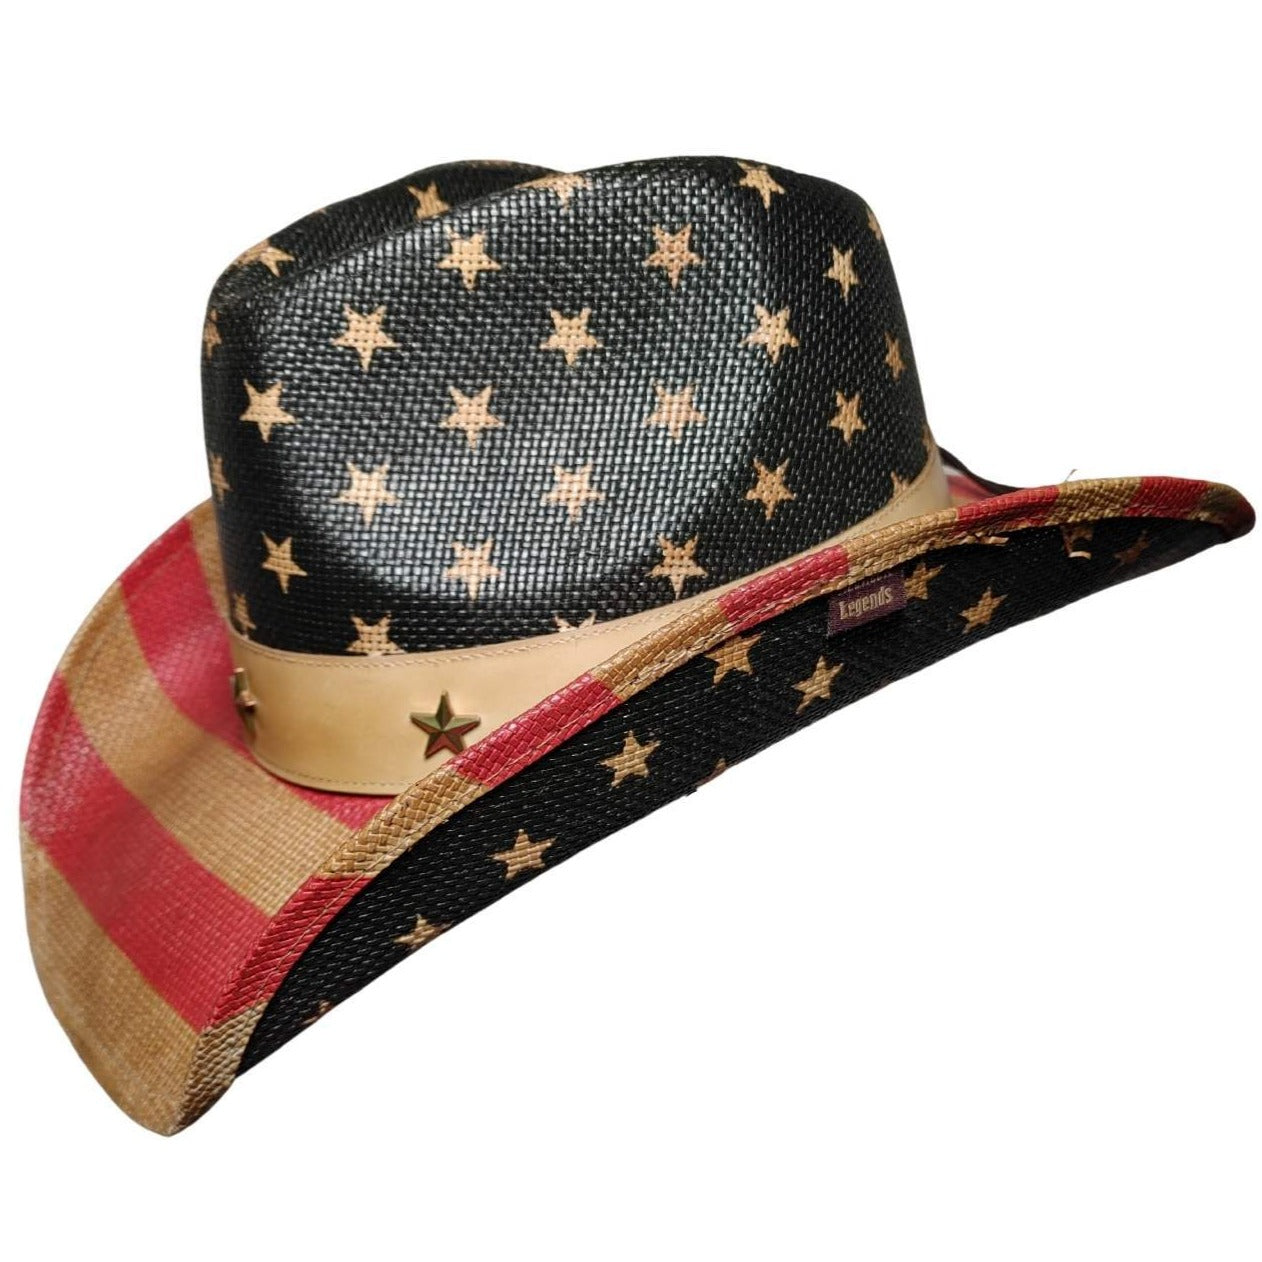 Frobie Keith American Flag Classic Cowboy Hat